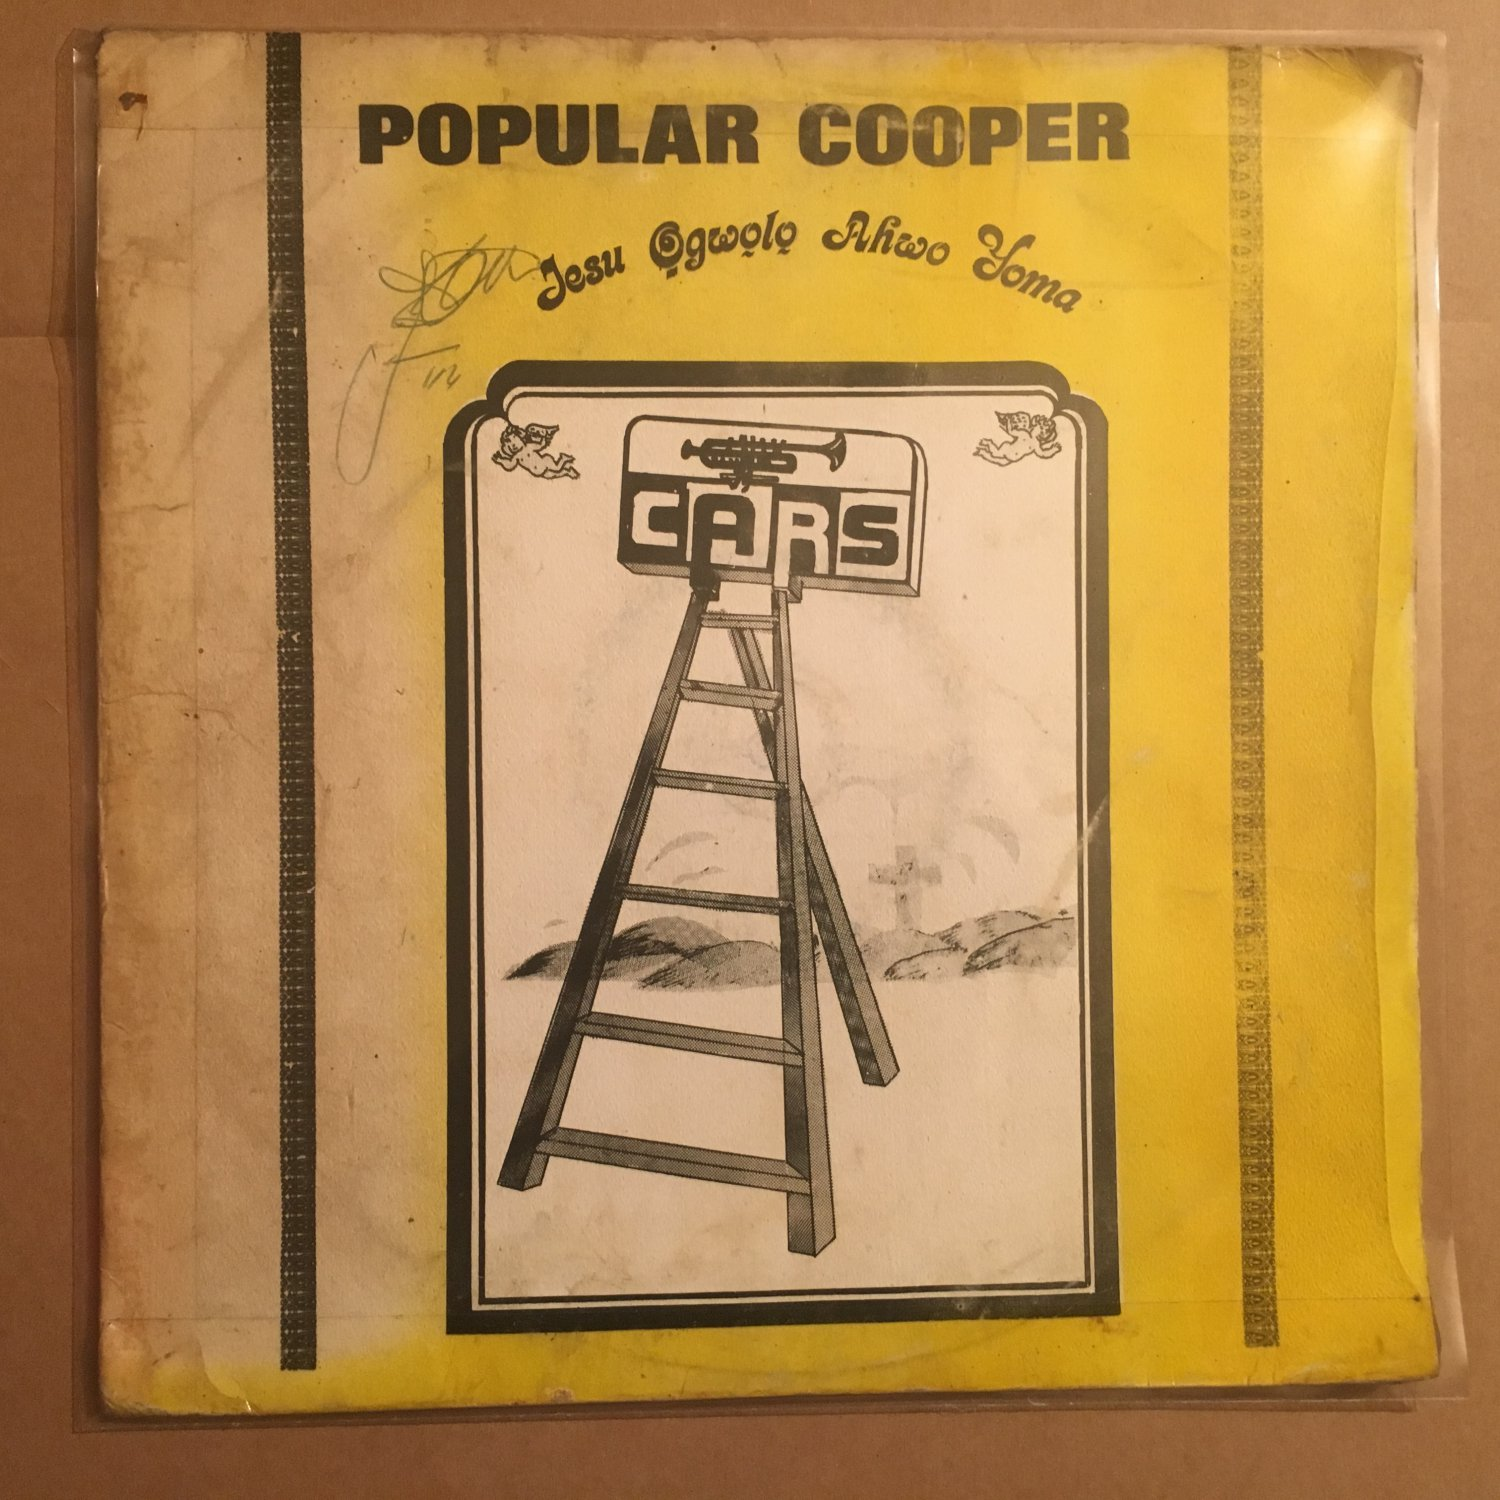 POPULAR COOPER & HIS ALL BEATS OF NIGERIA LP Jesu ogwolo NIGERIA FUNKY HIGHLIFE mp3 LISTEN